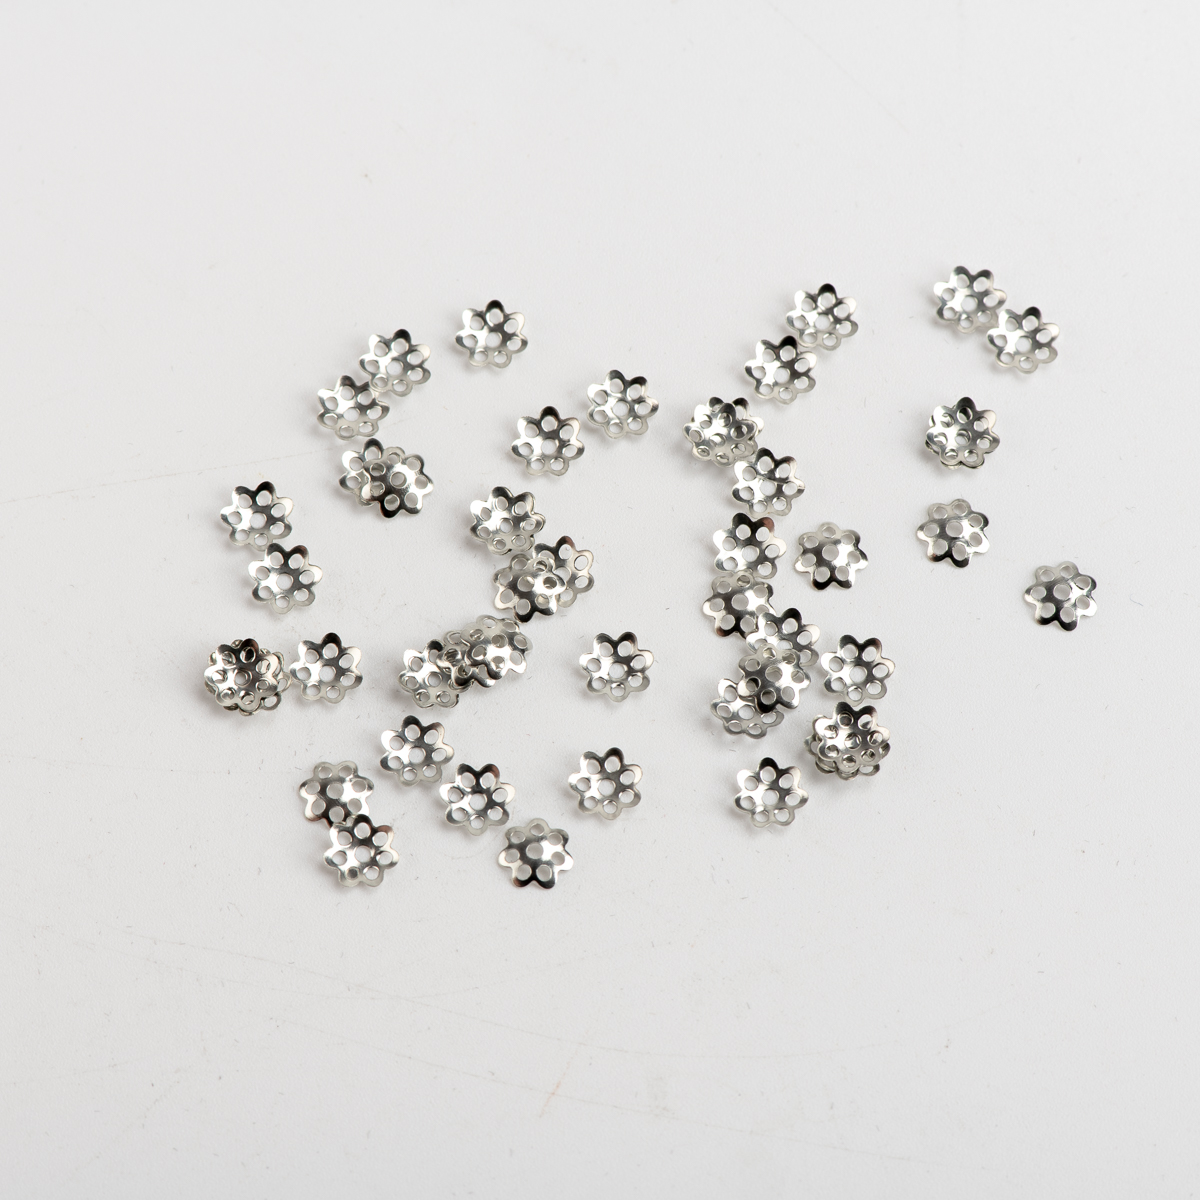 Bead Caps Jewelry Accessories DIY Jewelry Making Findings Handicraft Accessories For Jewelries Needlework #JY411